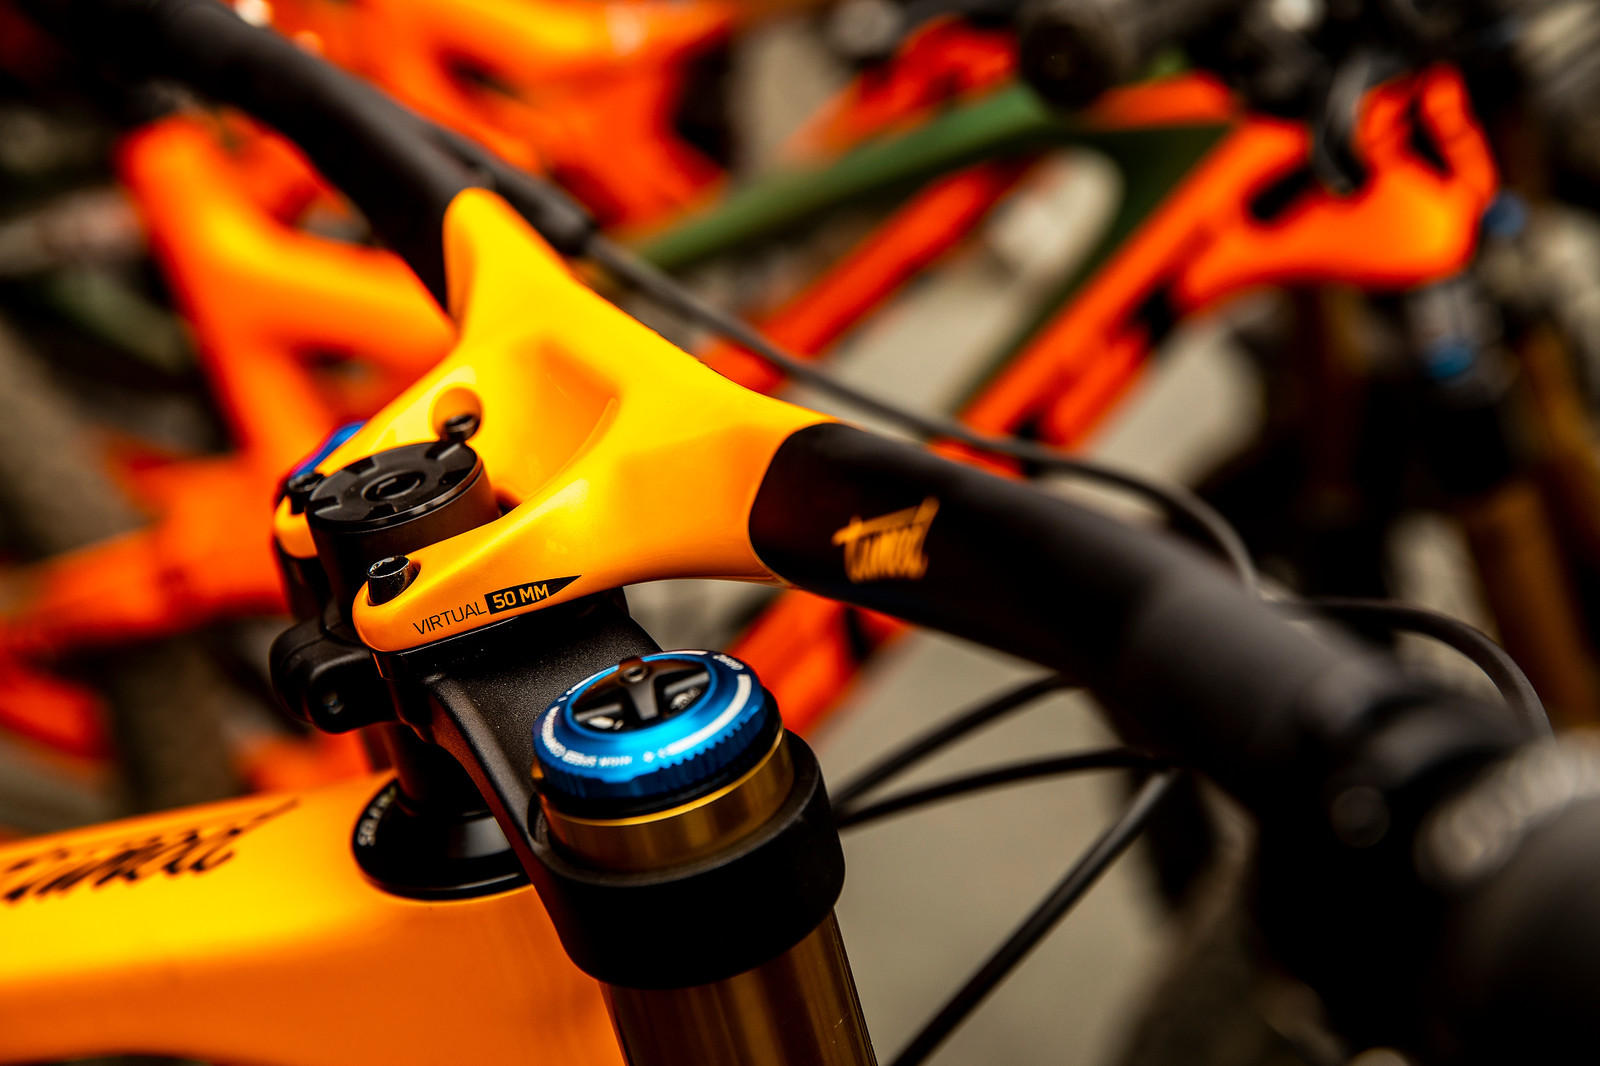 PIT BITS - Integrated Syncros Carbon Bar and Stem Combo on Scott DH Bikes - PIT BITS - 2019 Les Gets World Cup DH, France - Mountain Biking Pictures - Vital MTB